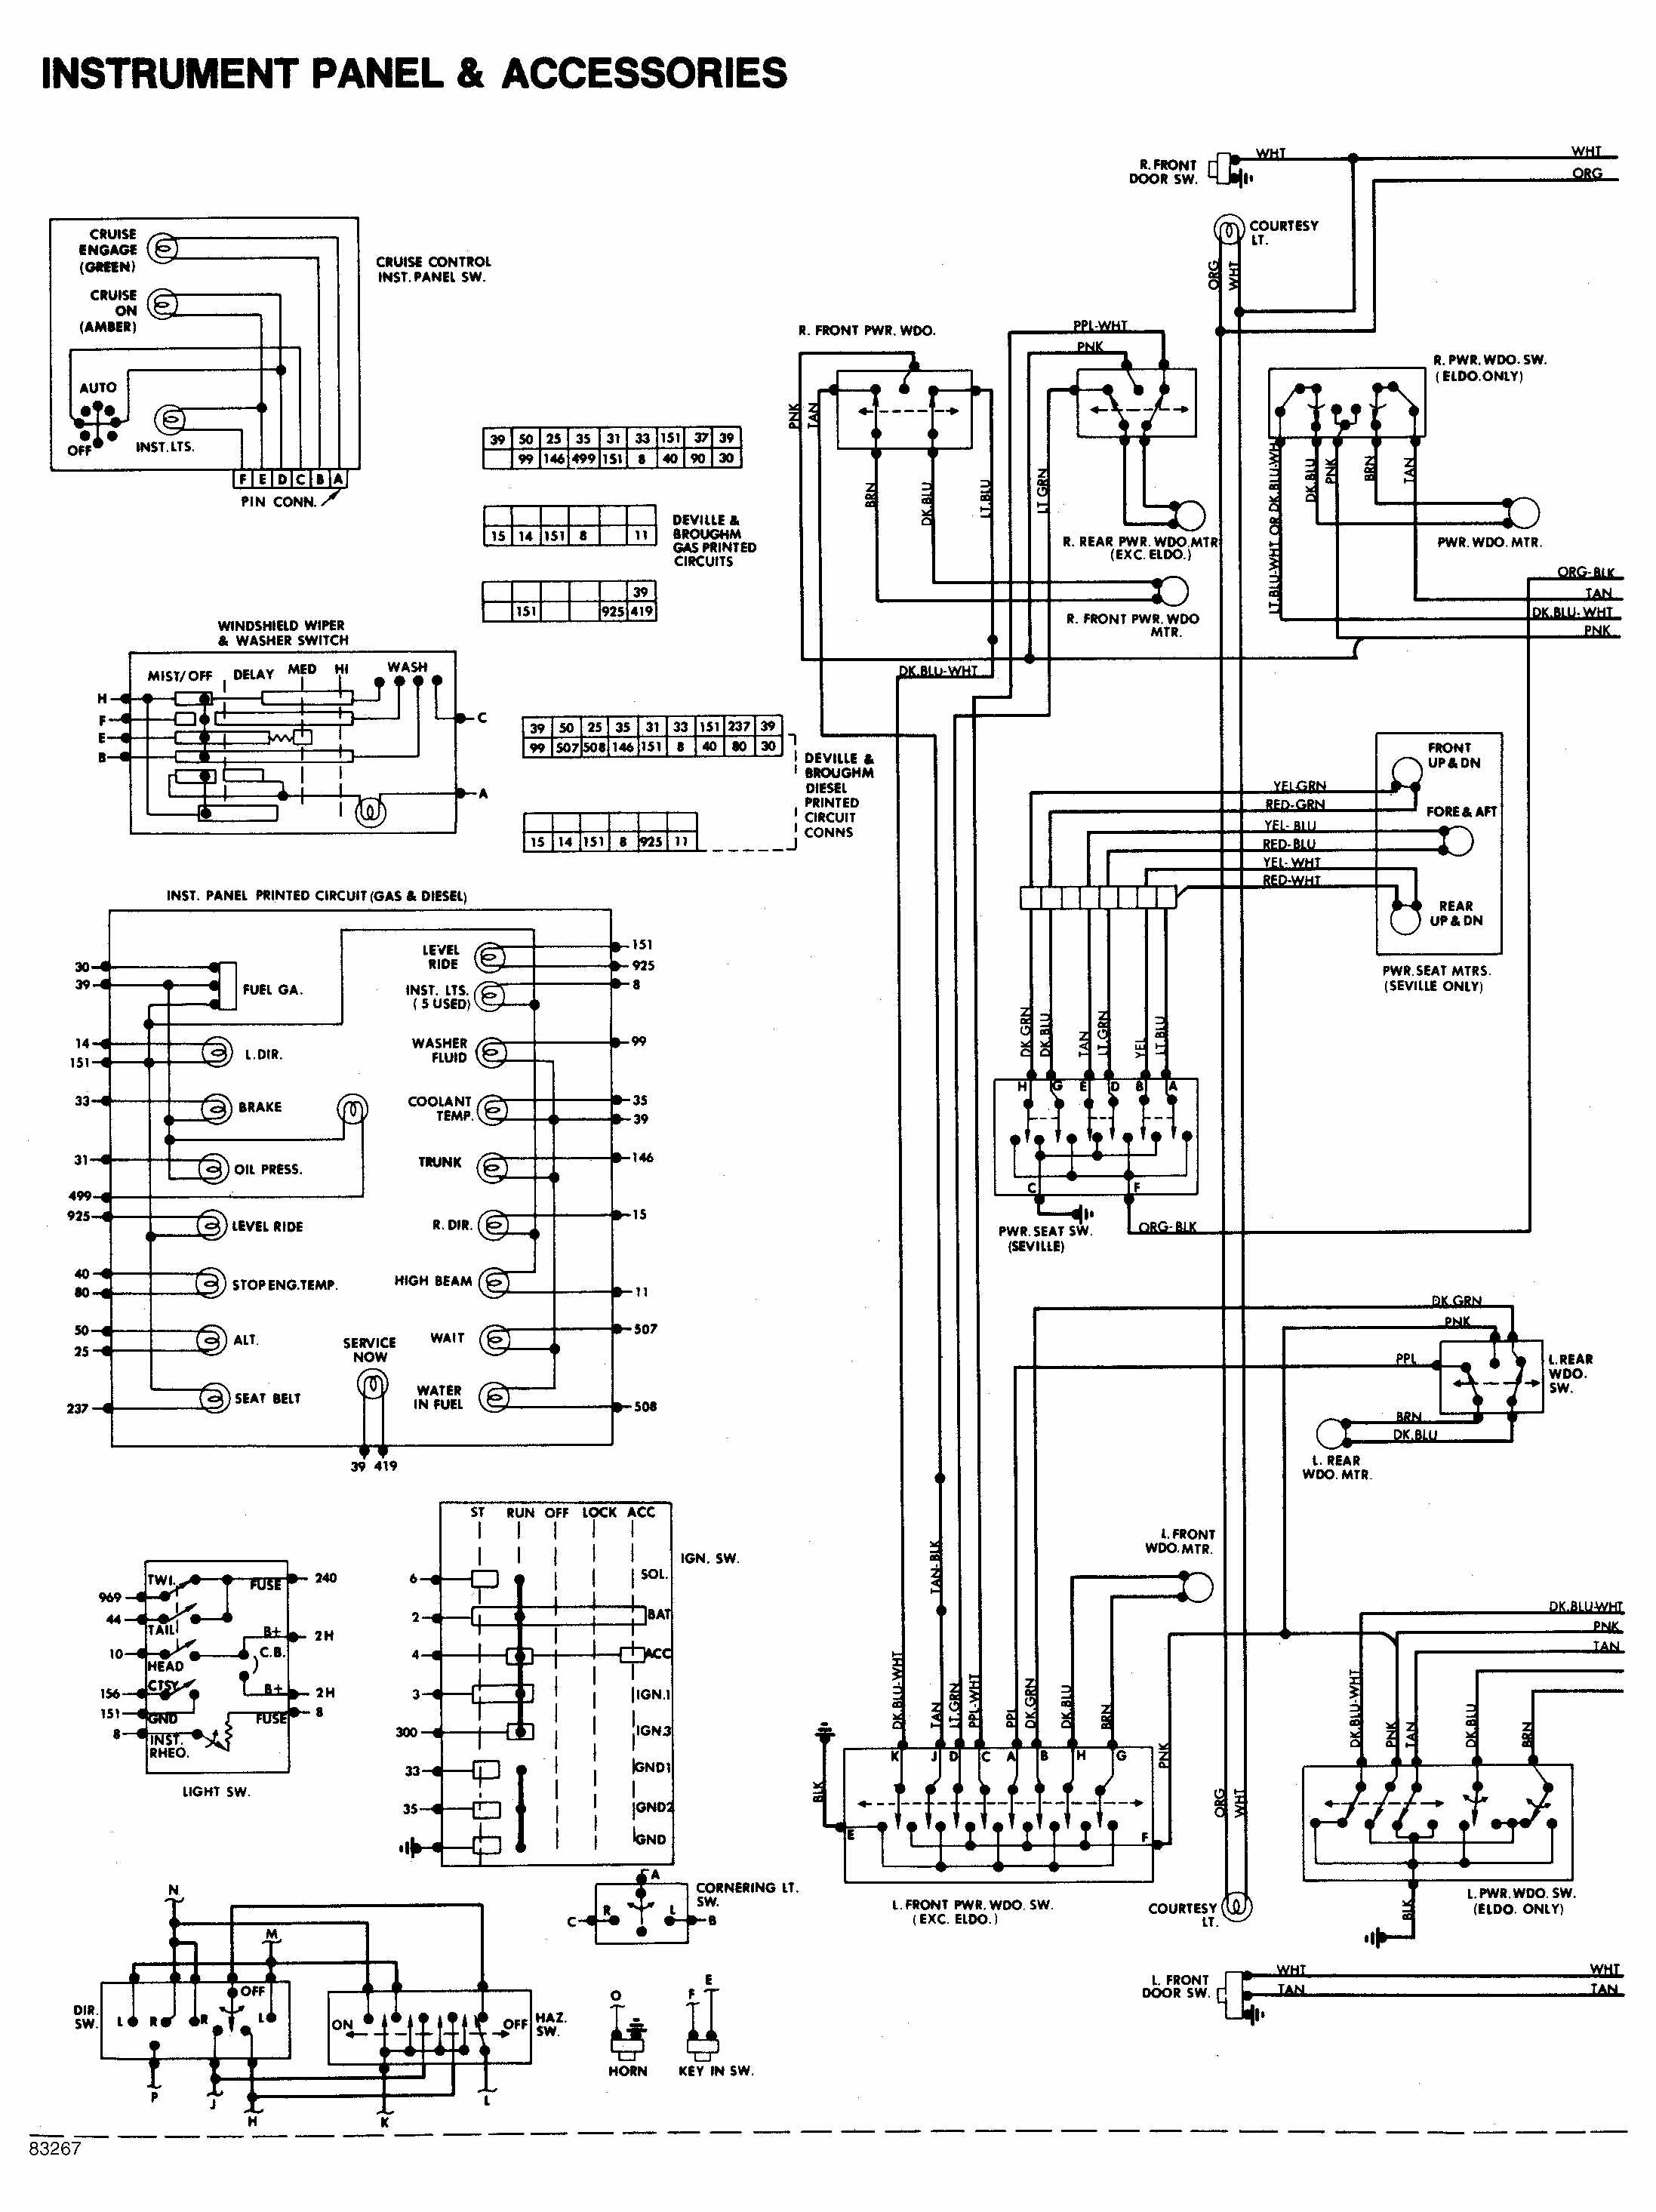 1999 Dodge Ram 1500 Ke Light Wiring Diagram Moreover Mittee Governance